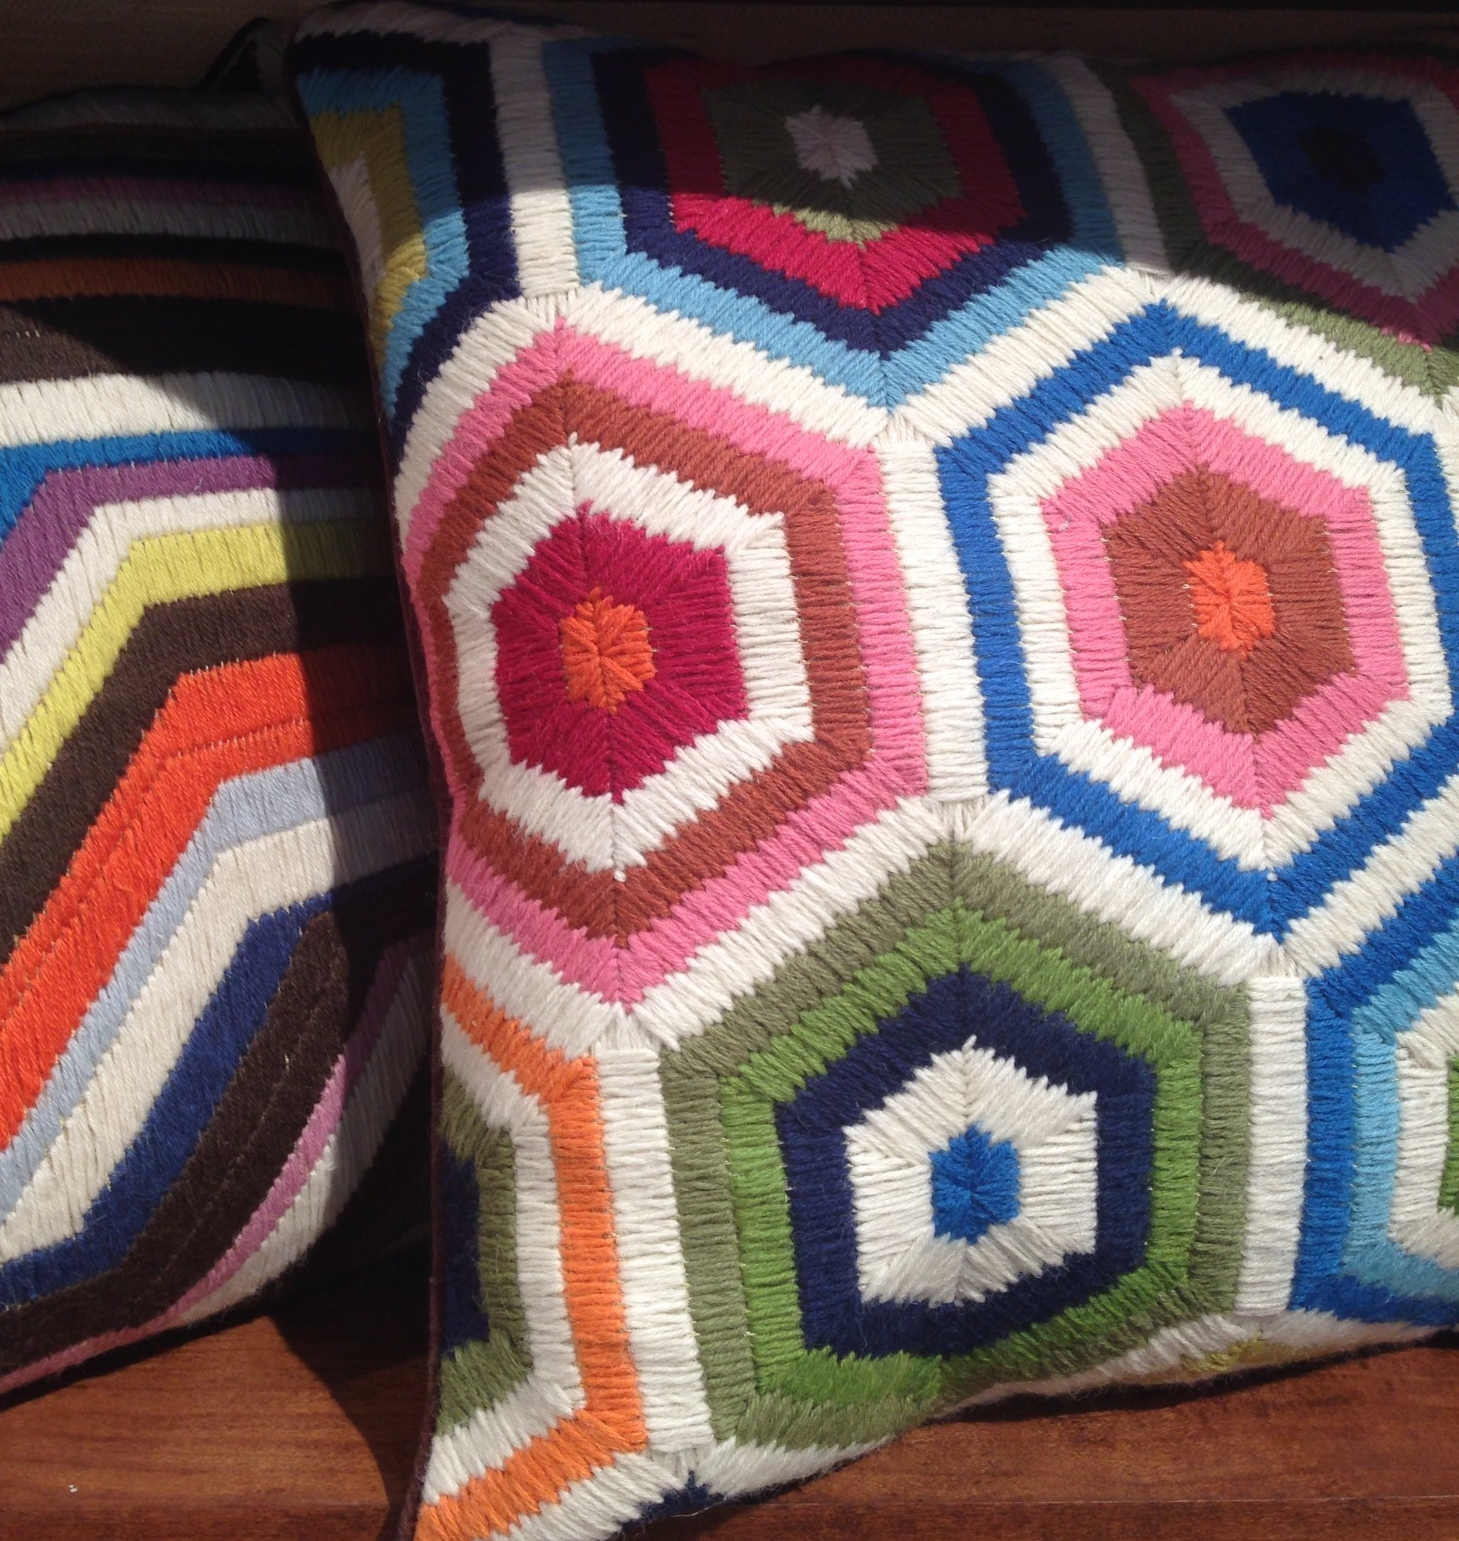 needlepoint bargello and flamestitch pillows of the 70's